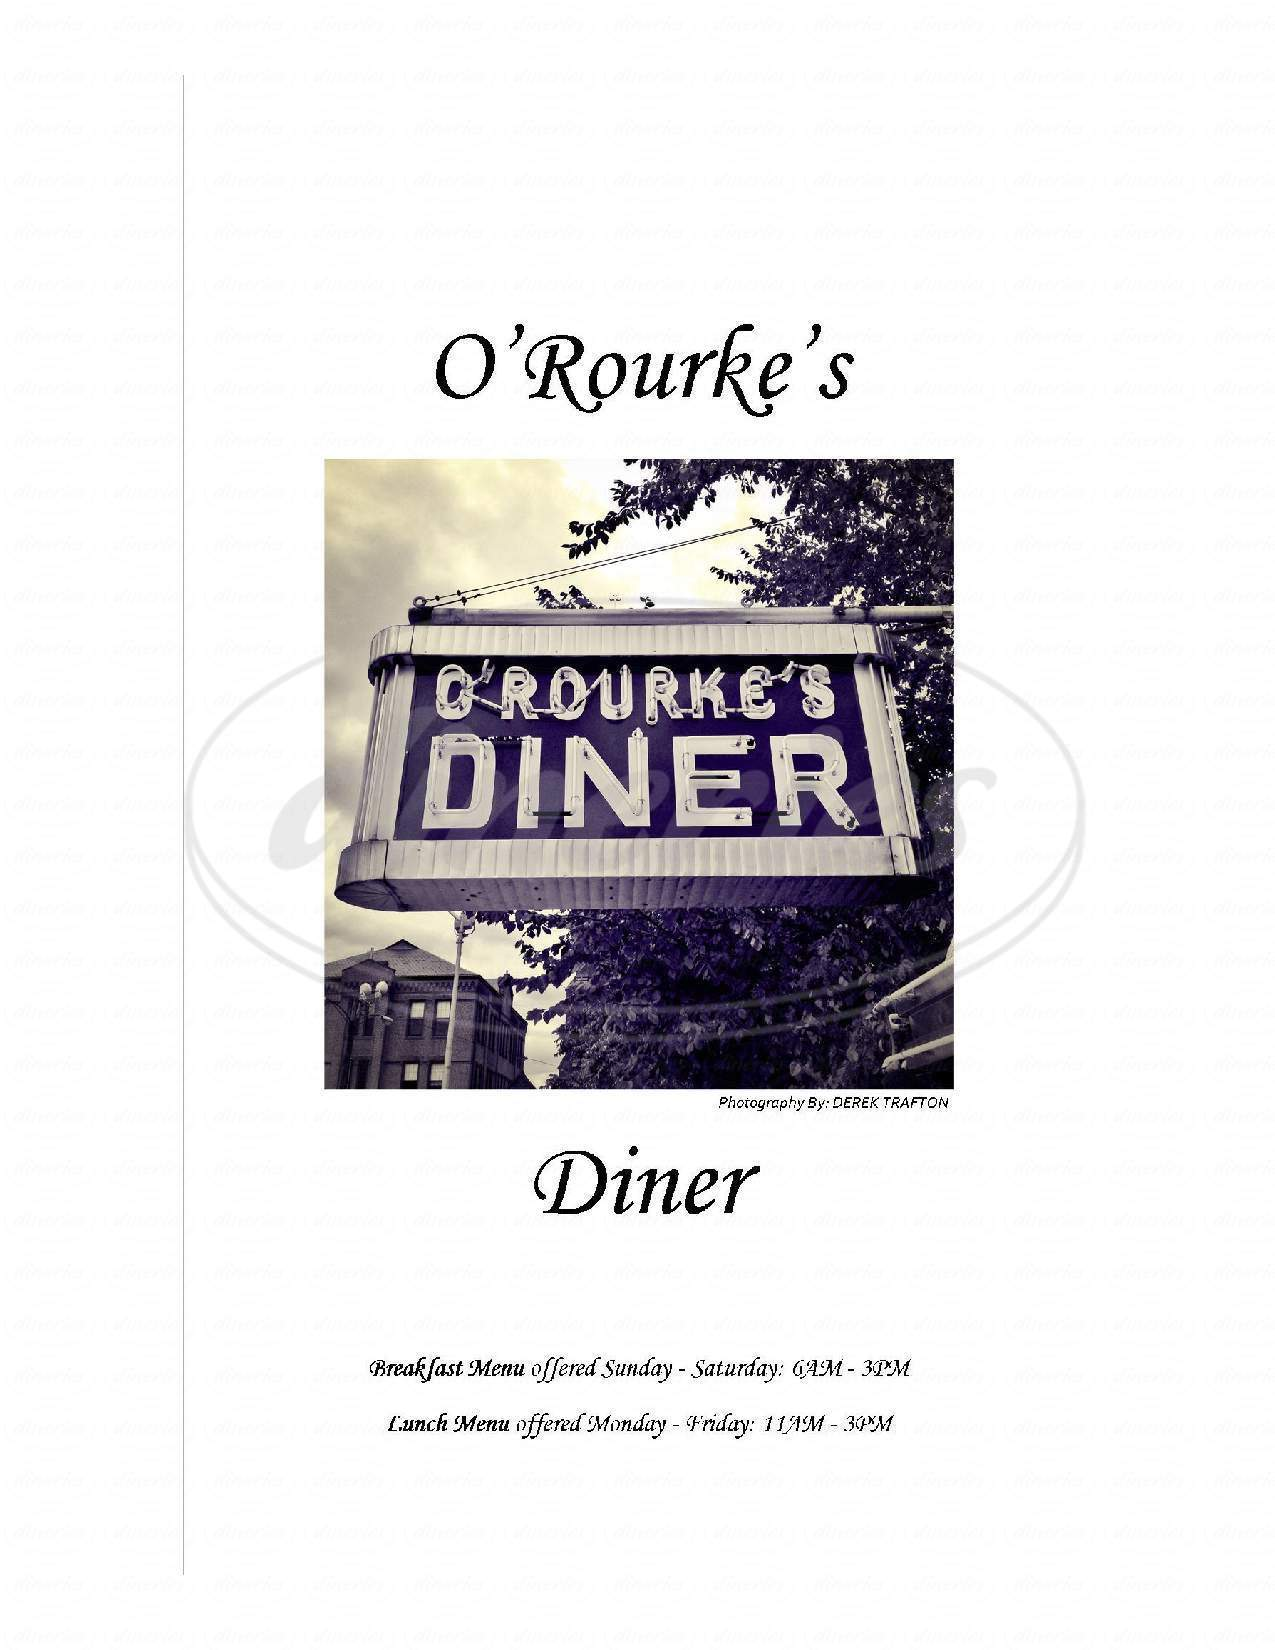 menu for O'Rourke's Diner